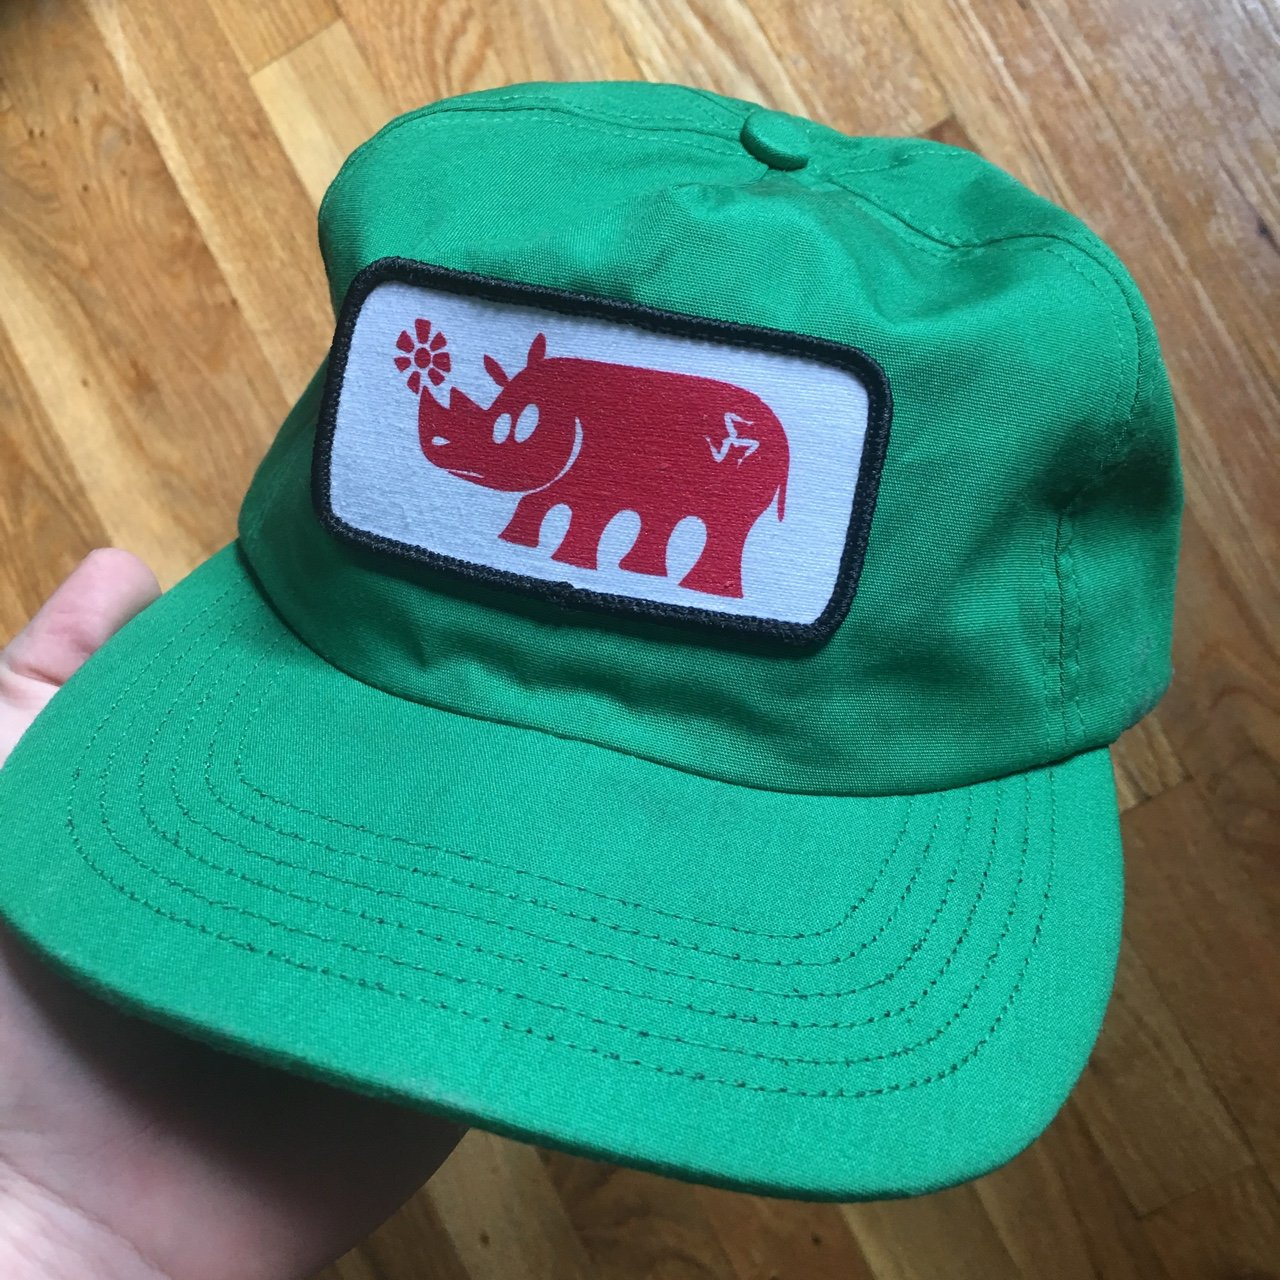 49ba5a660bd Call Me 917 SnapBack. Green. Made in USA. Worn once. supreme - Depop